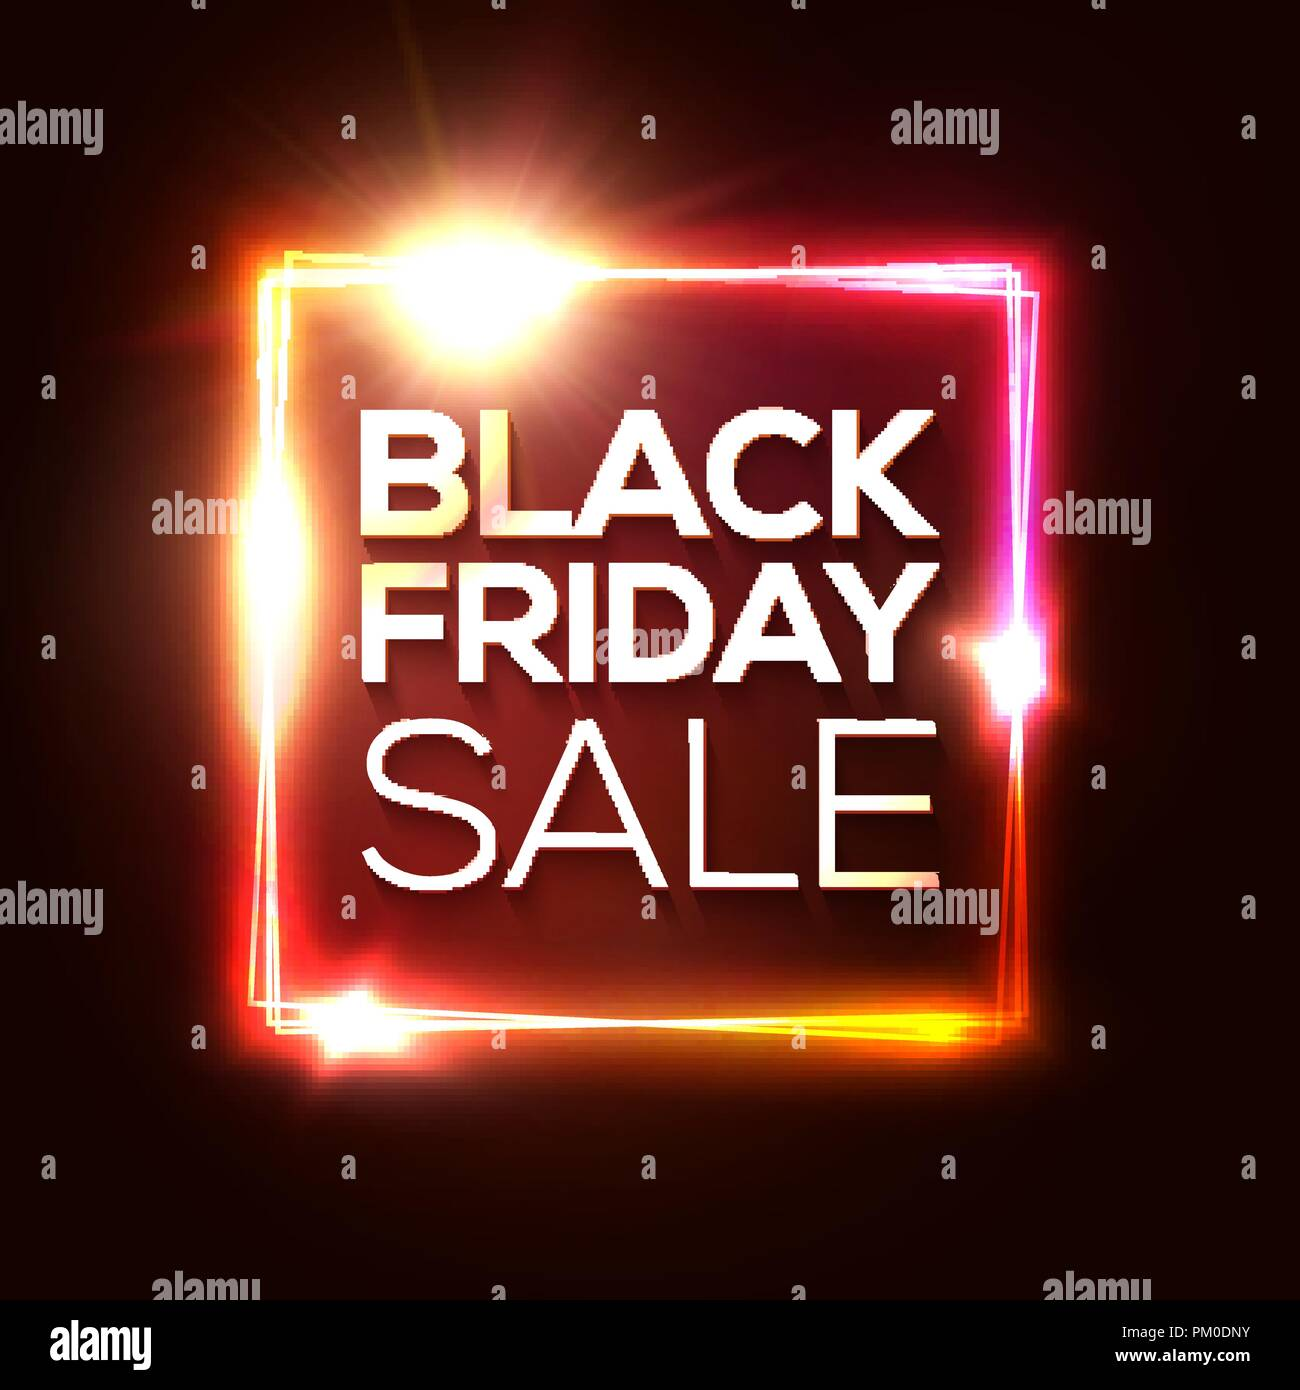 Black Friday Sale Banner Advertising Christmas Red Poster Glowing Neon Background Black Friday Design Template Electric Led Light Rectangle Frame November Discount Laser Logo Vector Illustration Stock Vector Image Art